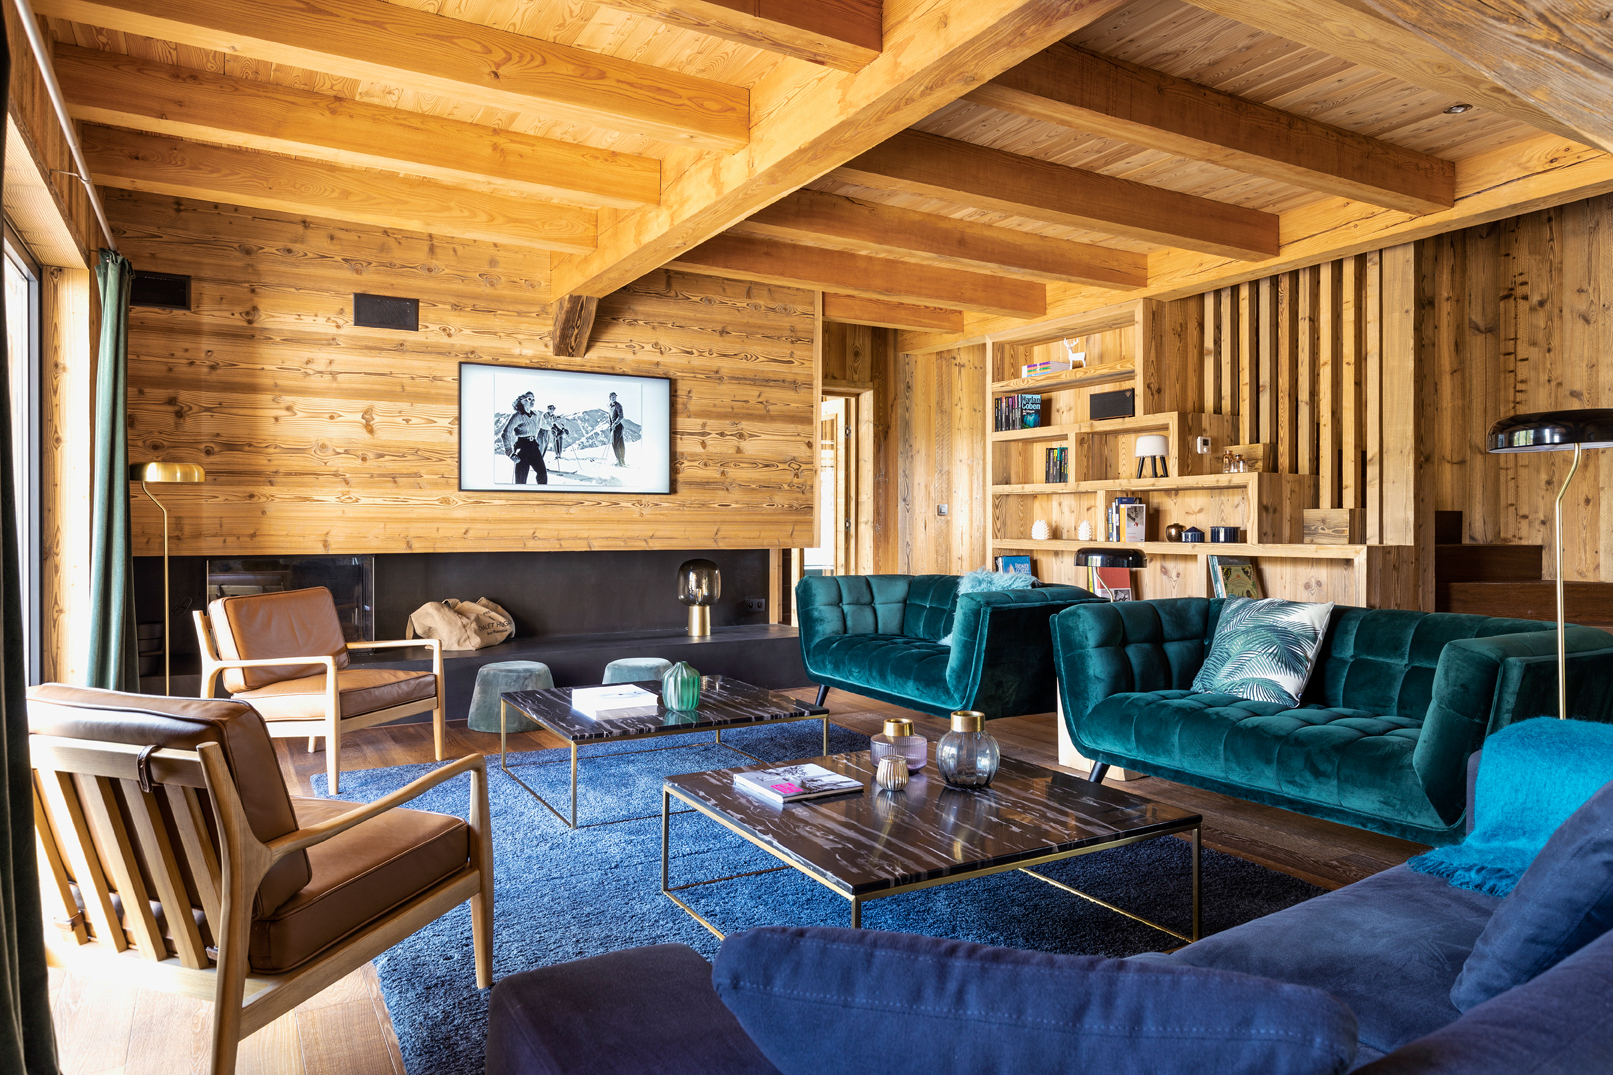 15/Chalet Hogan/location-chalet-luxe-monetier.jpg